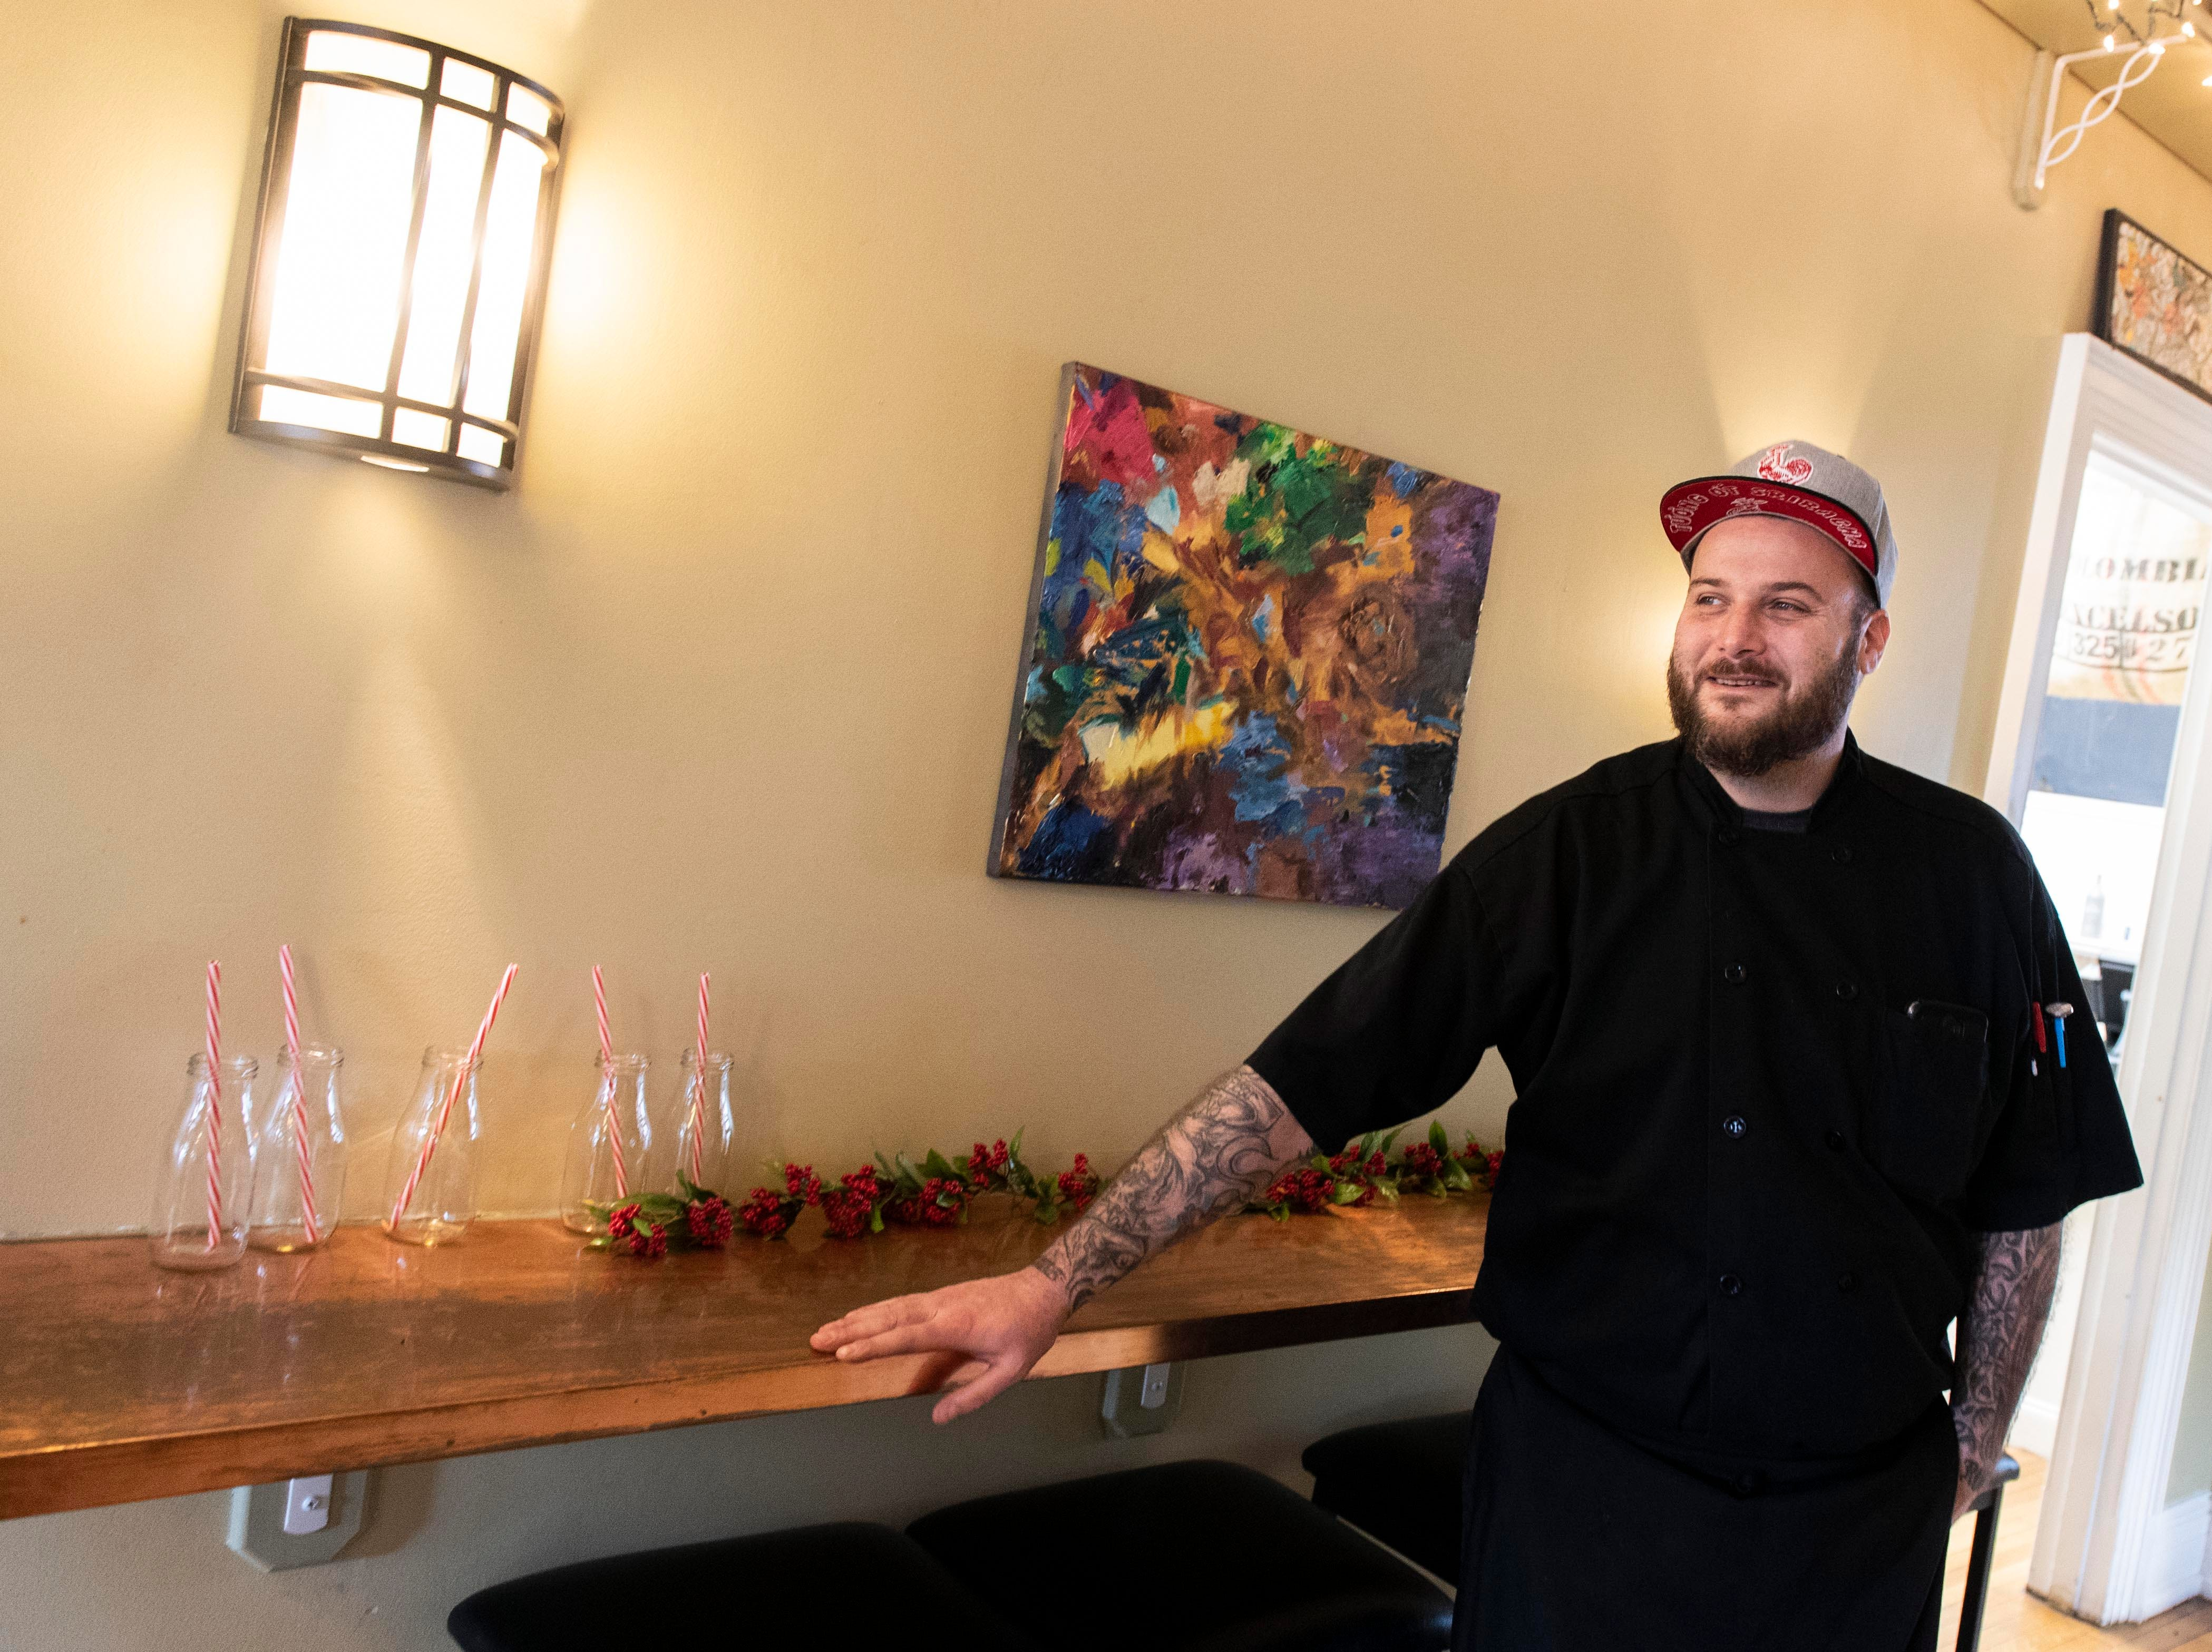 Michael McMonigle, owner and executive chef of HomeGrown Catering, says that he's always loved the restaurant business and when his youngest daughter was born, Isabelle, now 10-months-old, he decided to reach out to the former owner of the Front Porch Cafe in the Frey Mansion. HomeGrown is set to open on Jan. 10, with an American-style menu with a French twist. It's also BYOB.